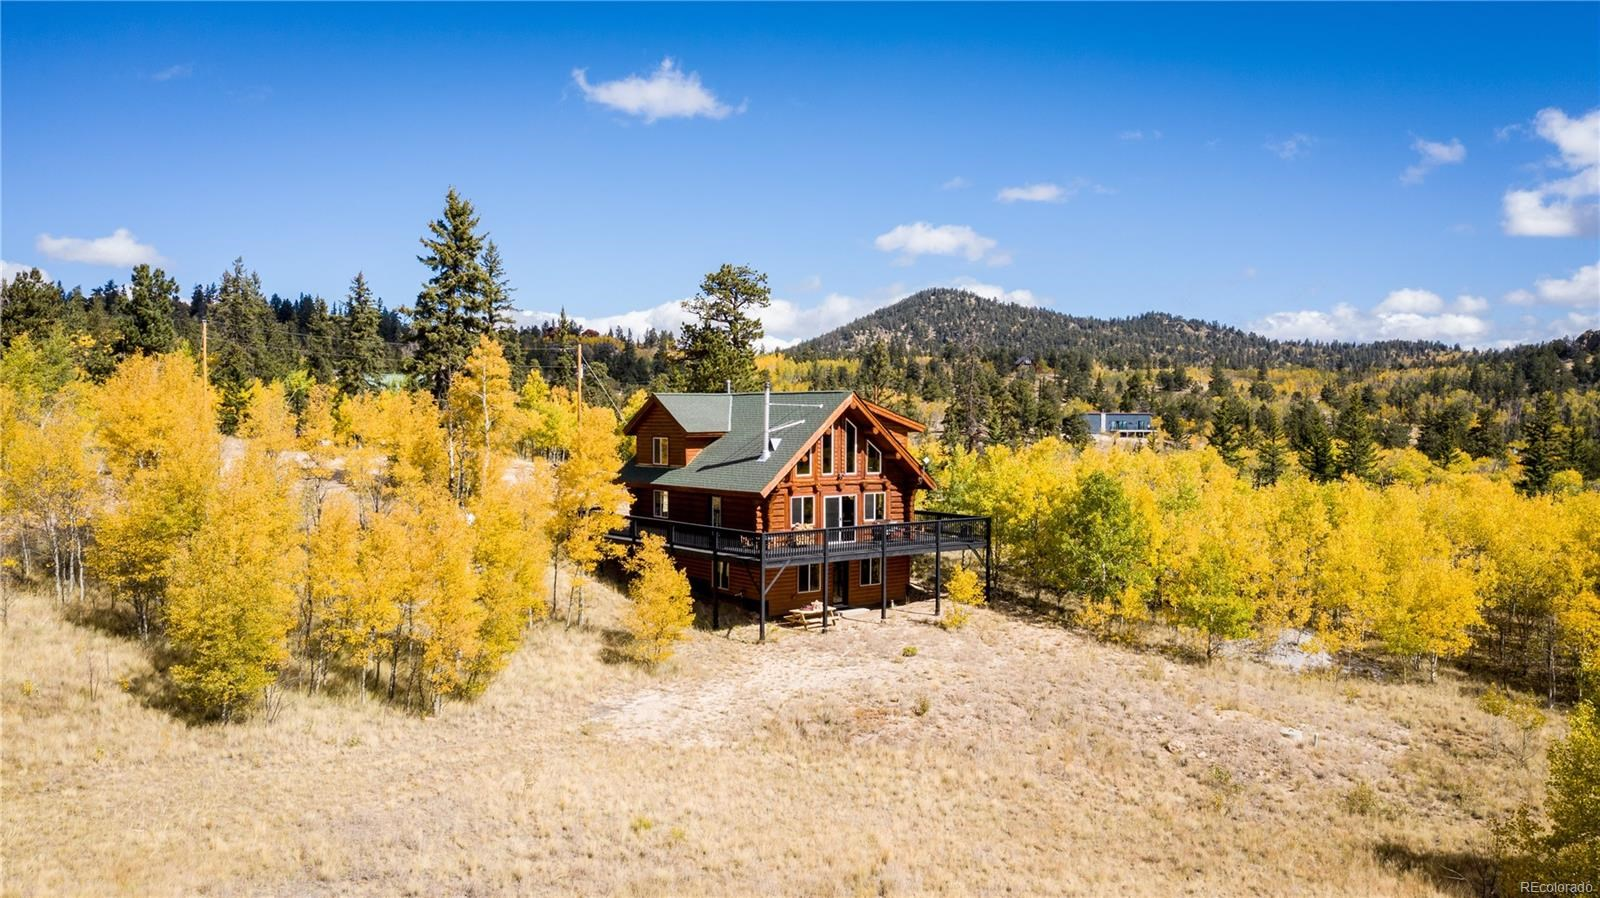 MLS# 8358796 - 35 - 230 Ignacio Way, Como, CO 80456